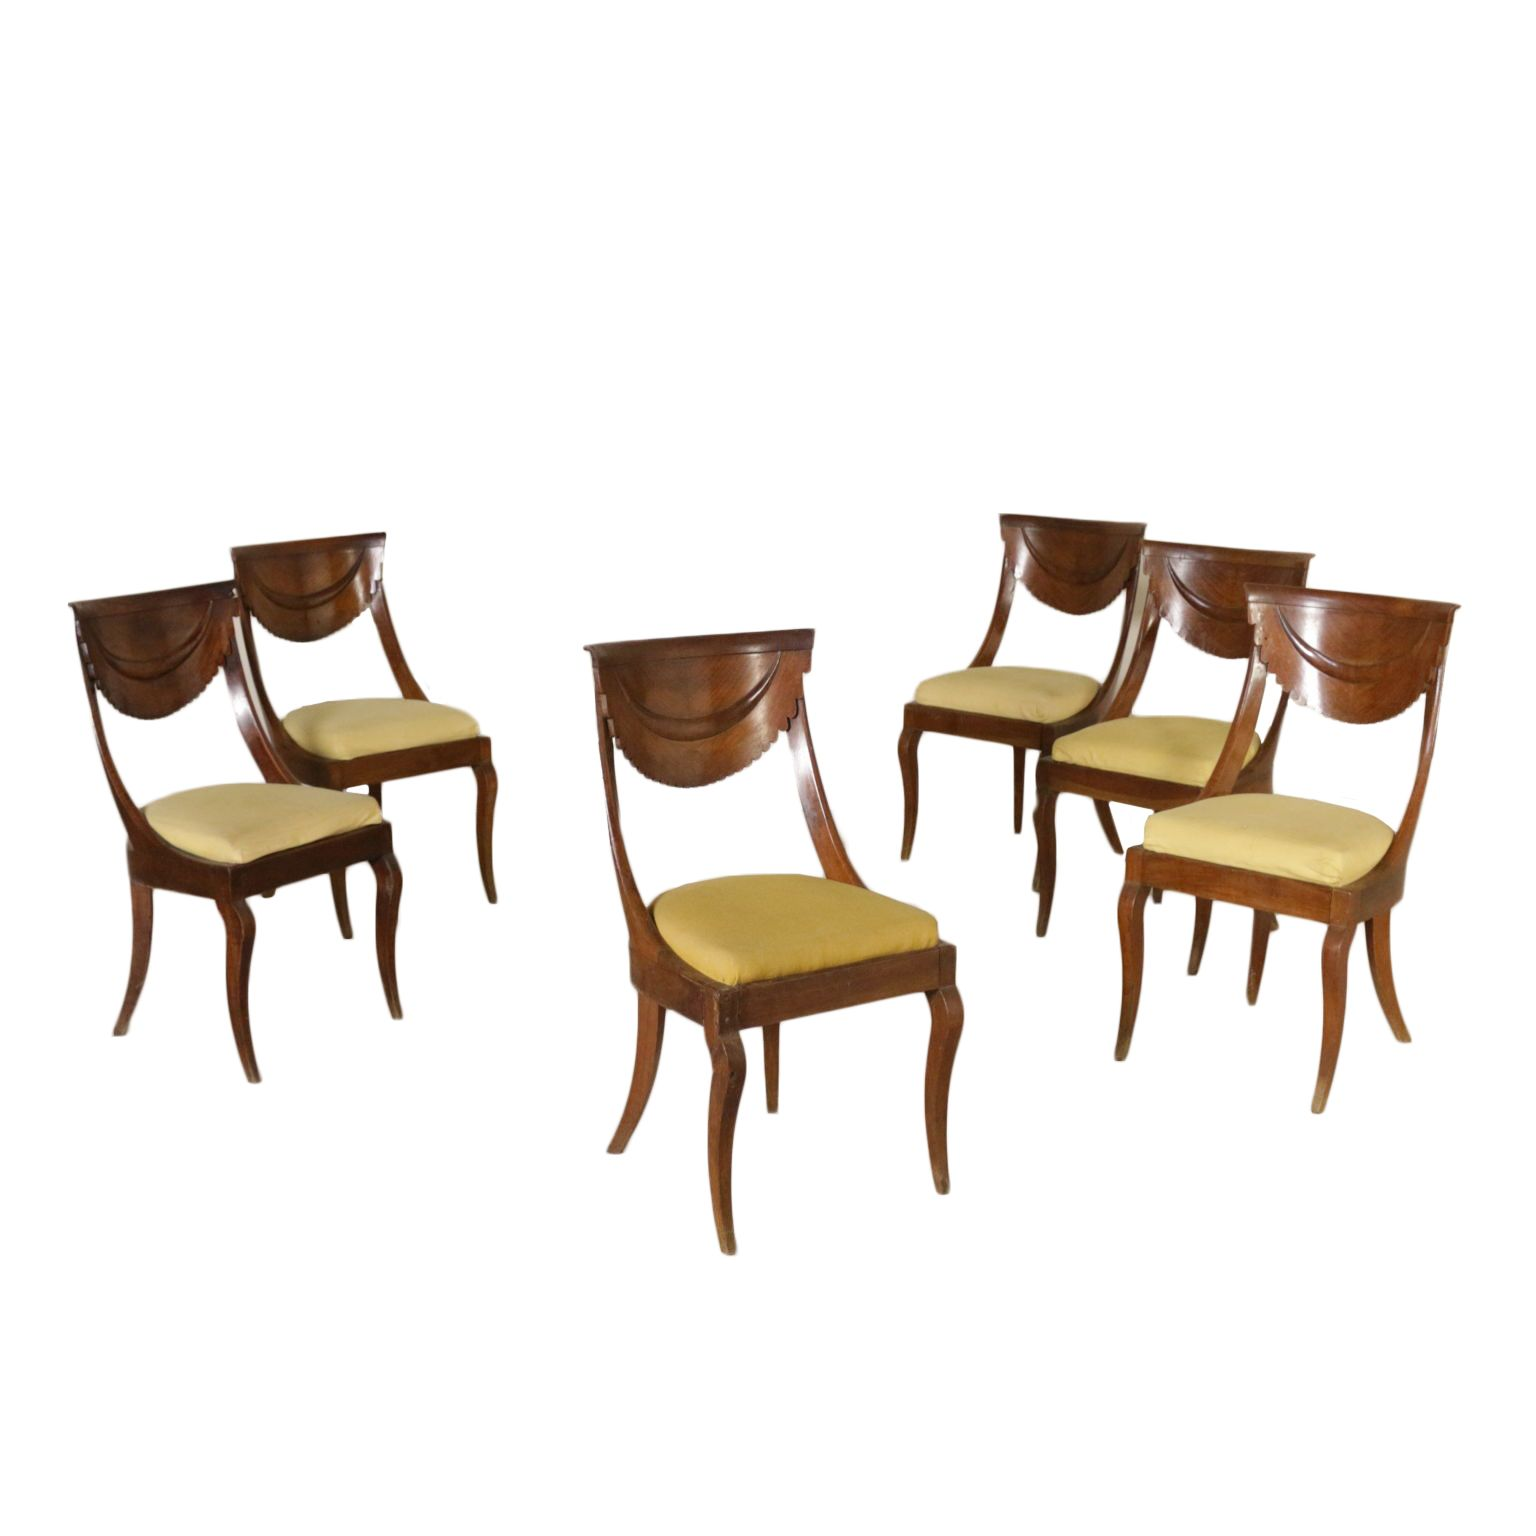 Antiquitaten Set Of Six Gondola Chairs Italy Second Quarter Of 1800 Chaises Antiques Chaise Canape Chesterfield